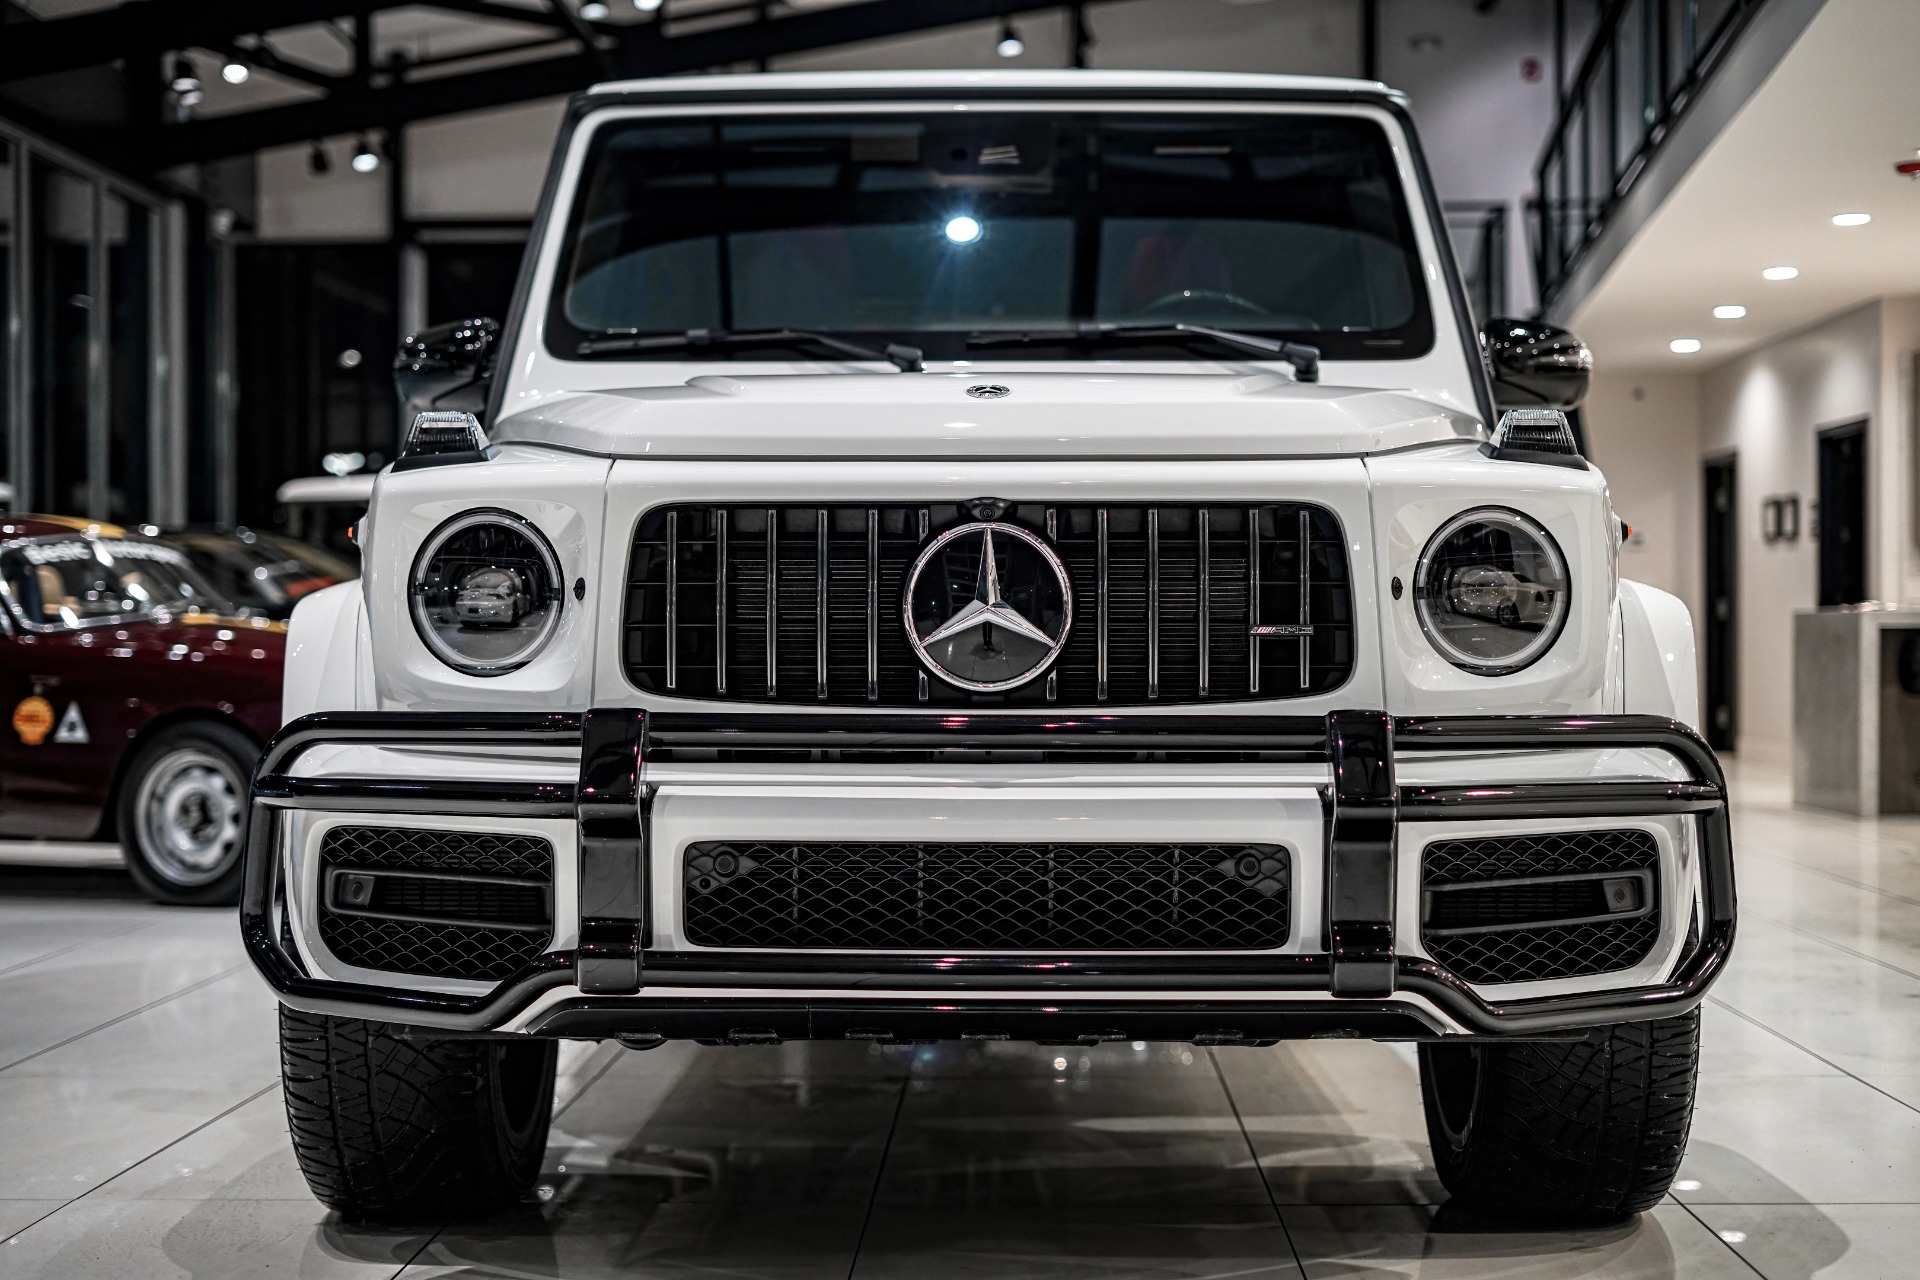 used 2021 mercedes-benz g63 amg night package! exclusive